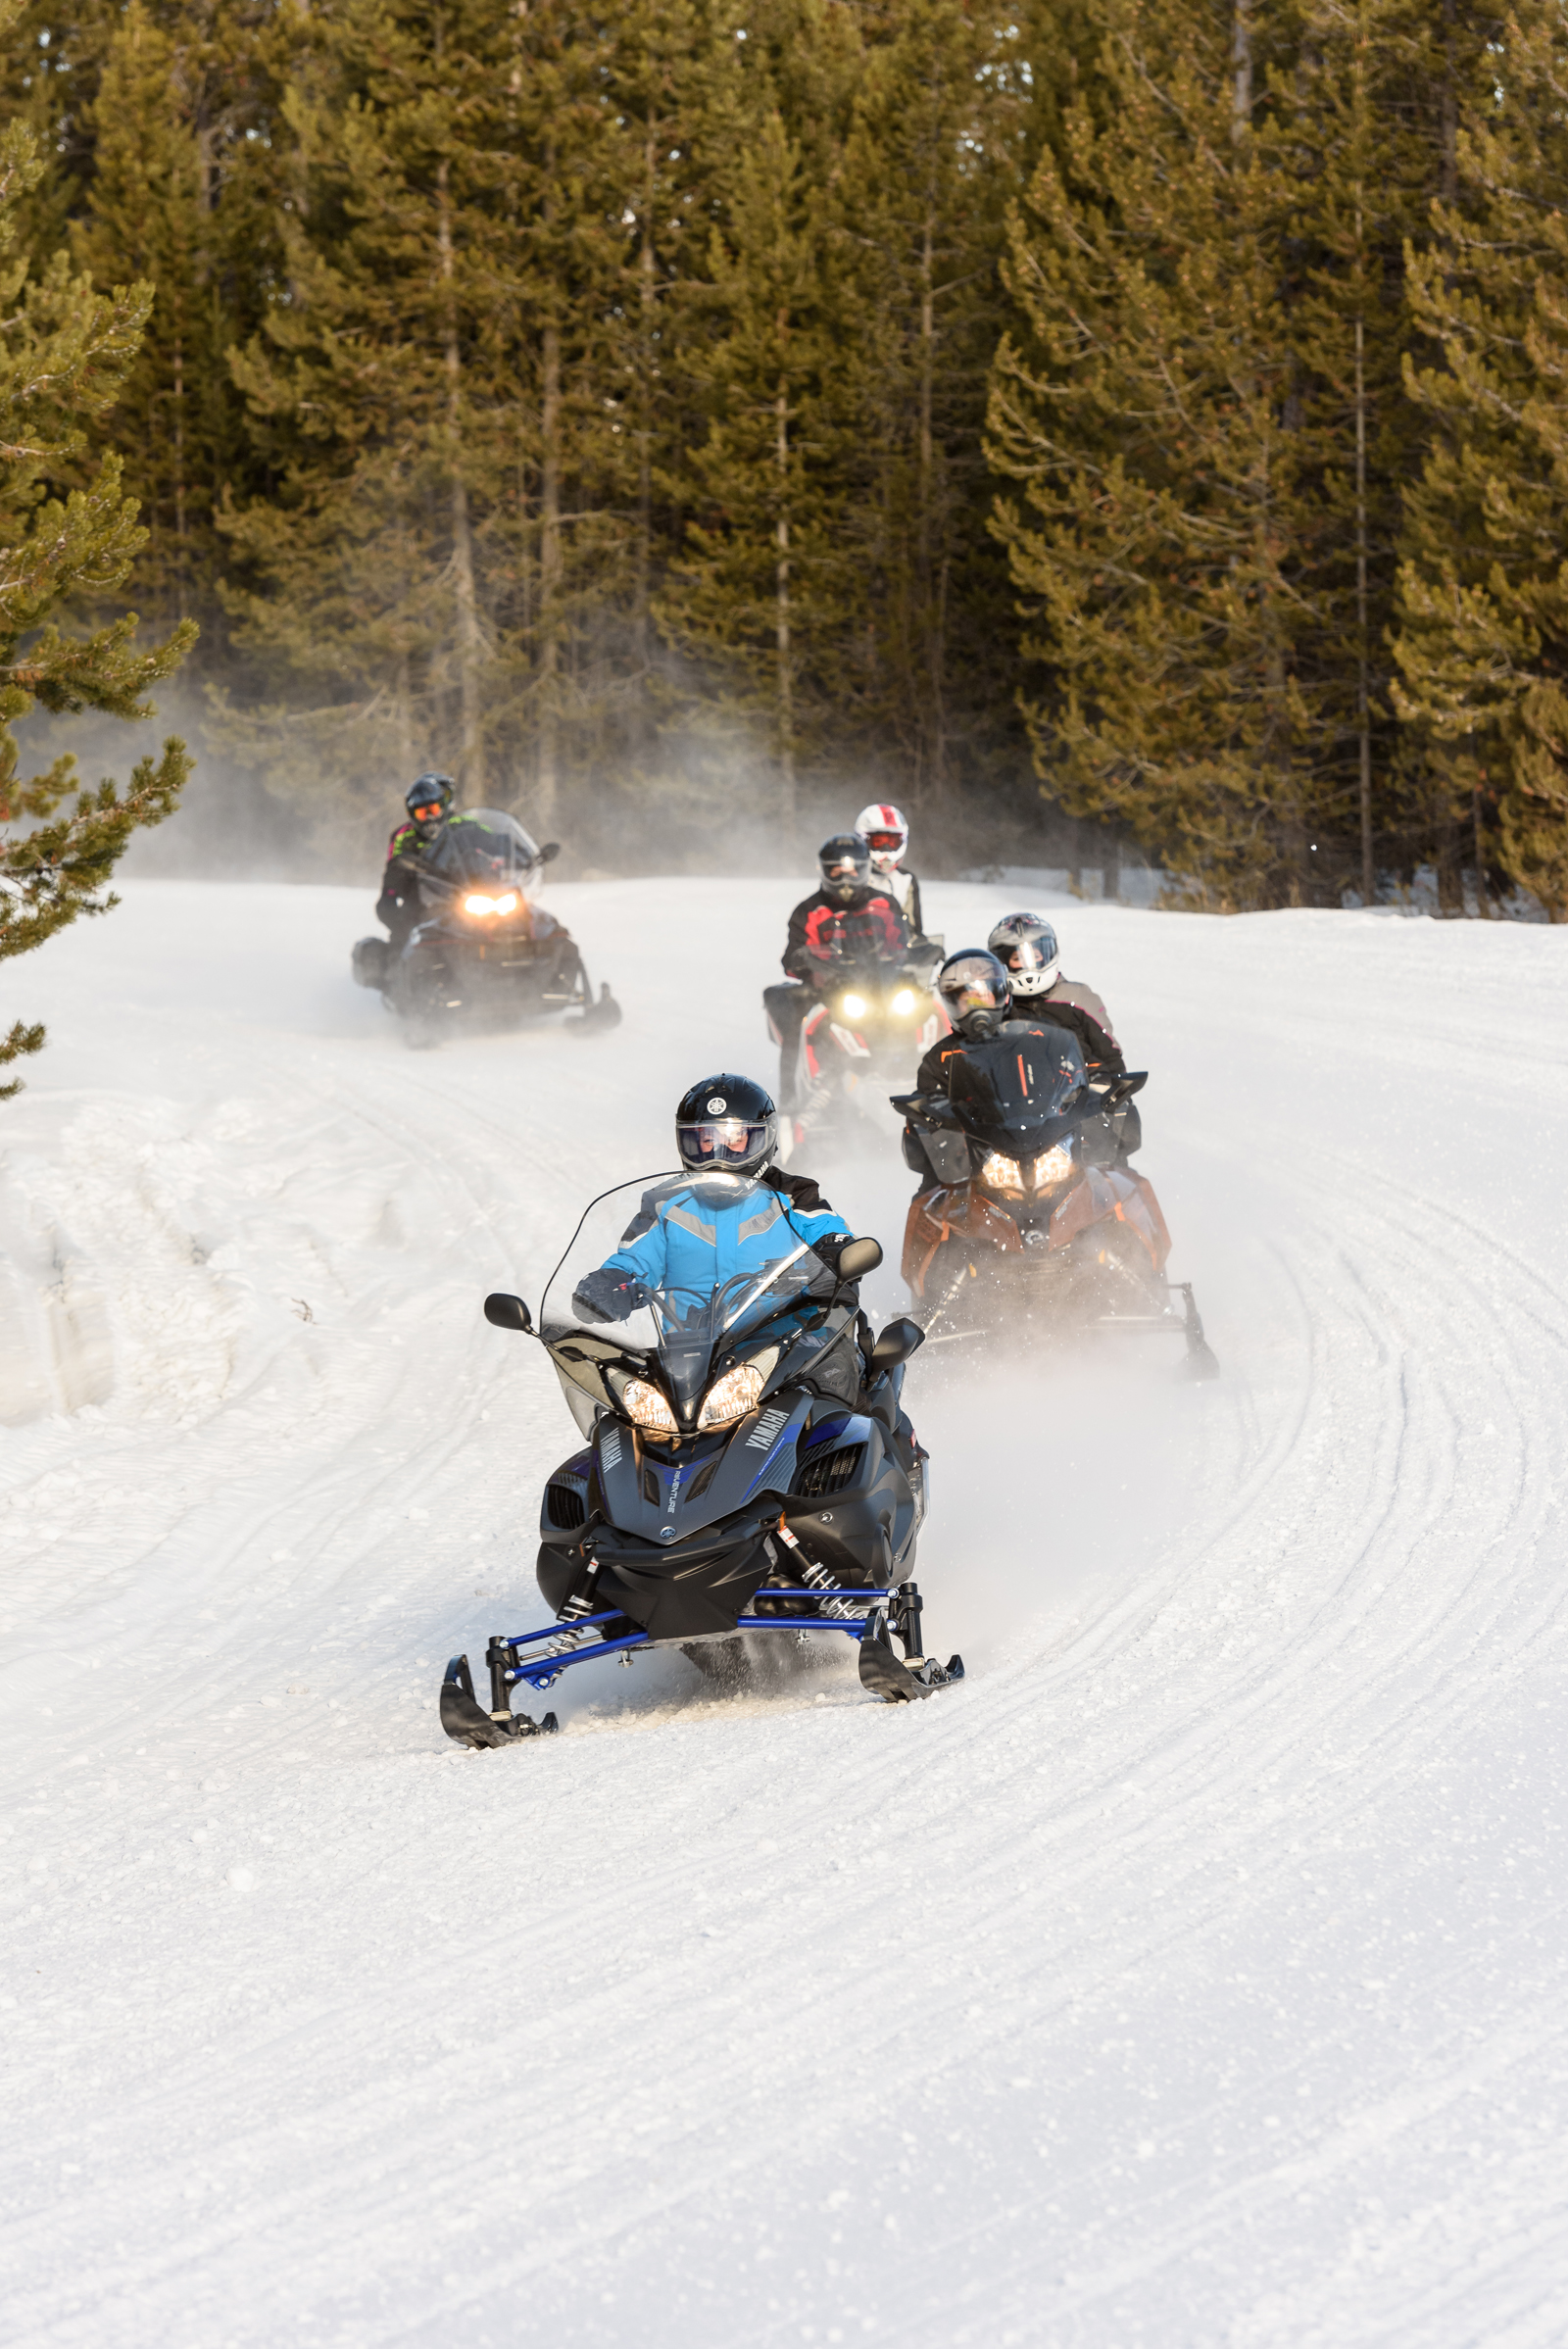 going riding on a snowmobile Cool ride pa some of the world you'll run out of winter long before you run out of places to snowmobile in pennsylvania and please remember, in order to ride on state lands: a snowmobile must be properly registered with the snowmobile unit in the bureau of forestry.